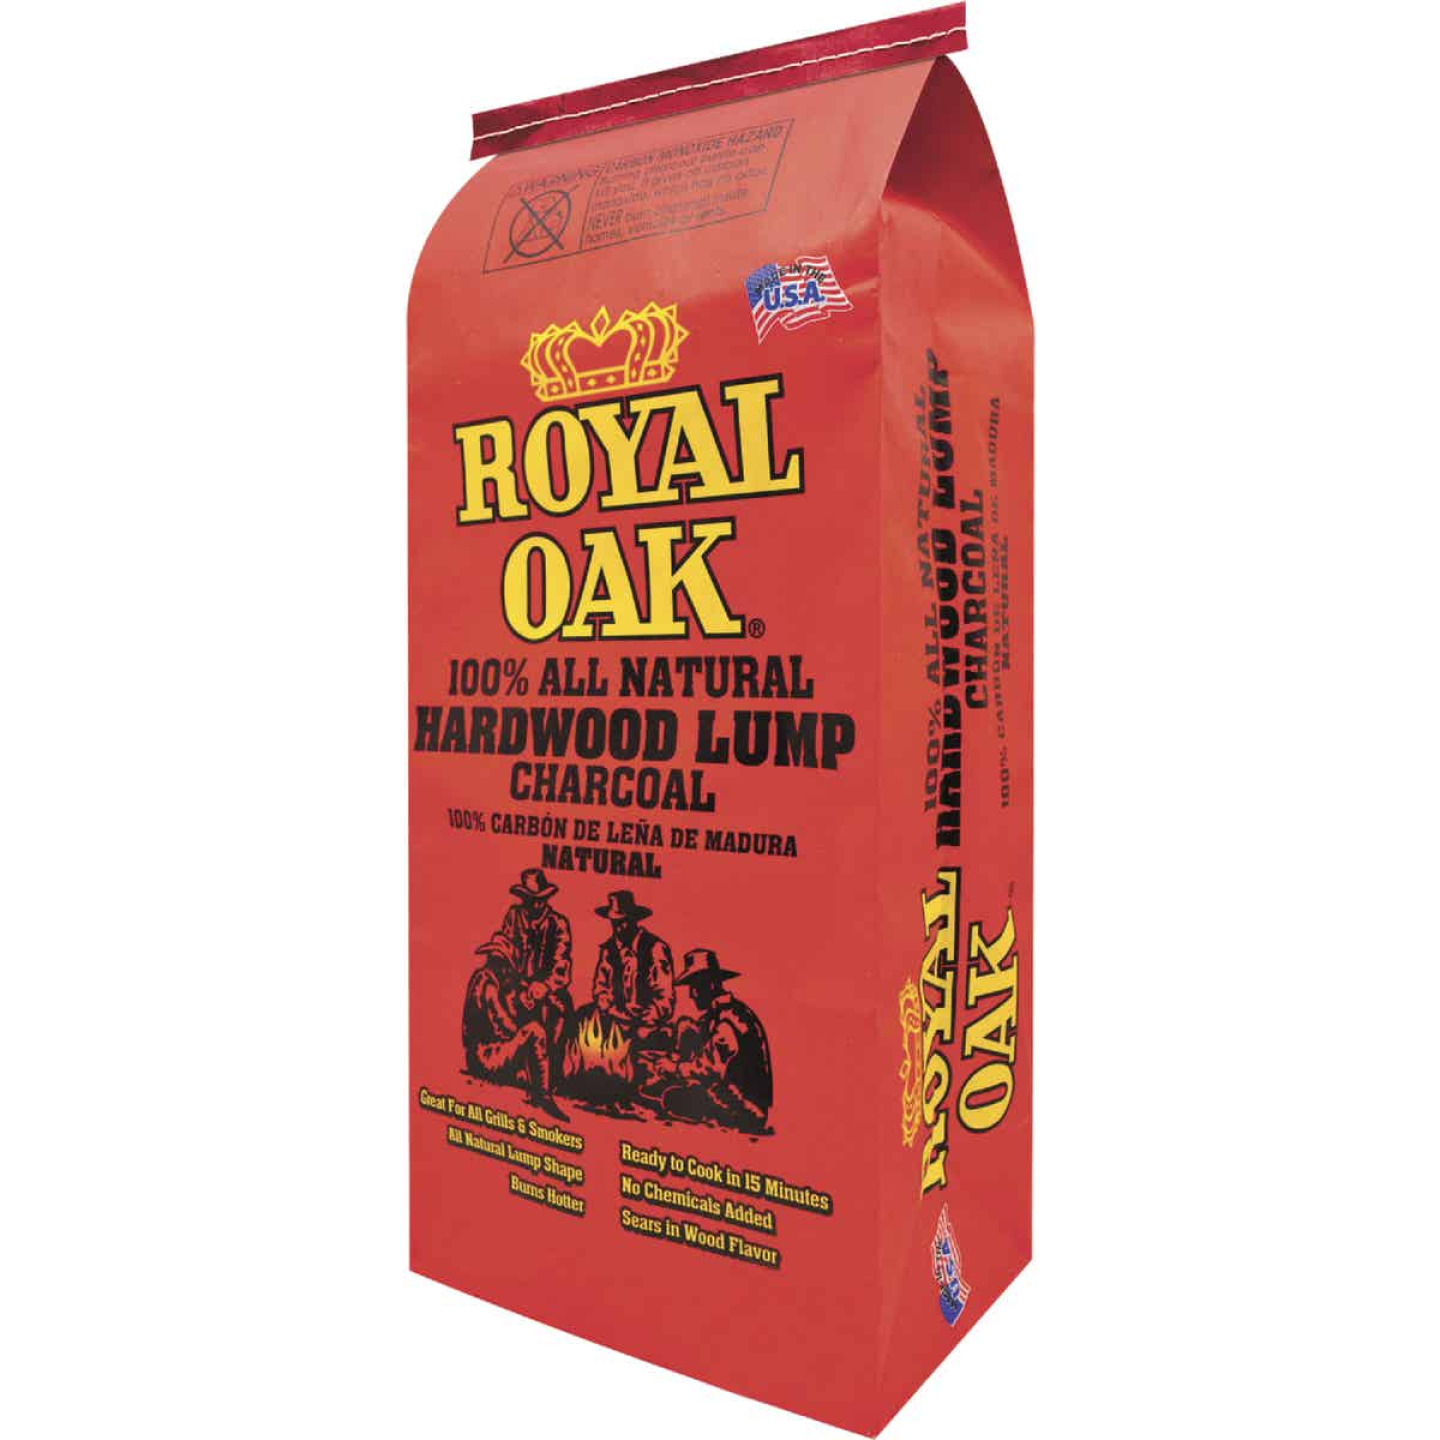 Royal Oak 15.4 Lb. Natural Lump Charcoal Image 1